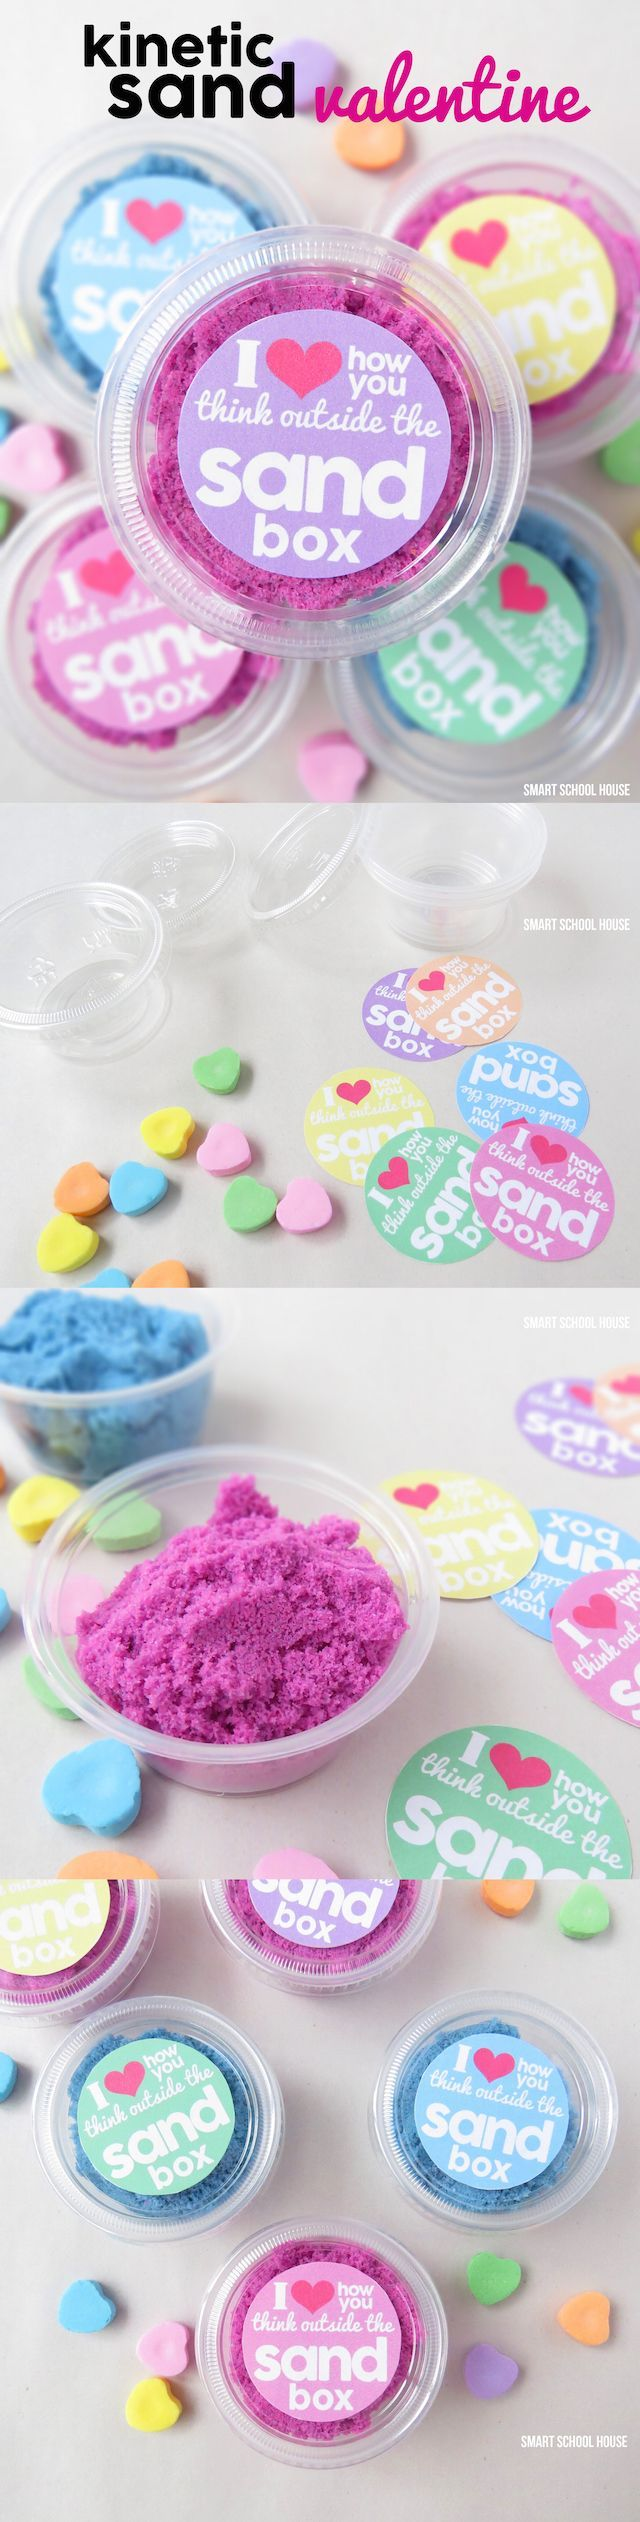 diy kinetic sand valentine with printable a fun and easy non candy valentine idea cute valentines day giftskids